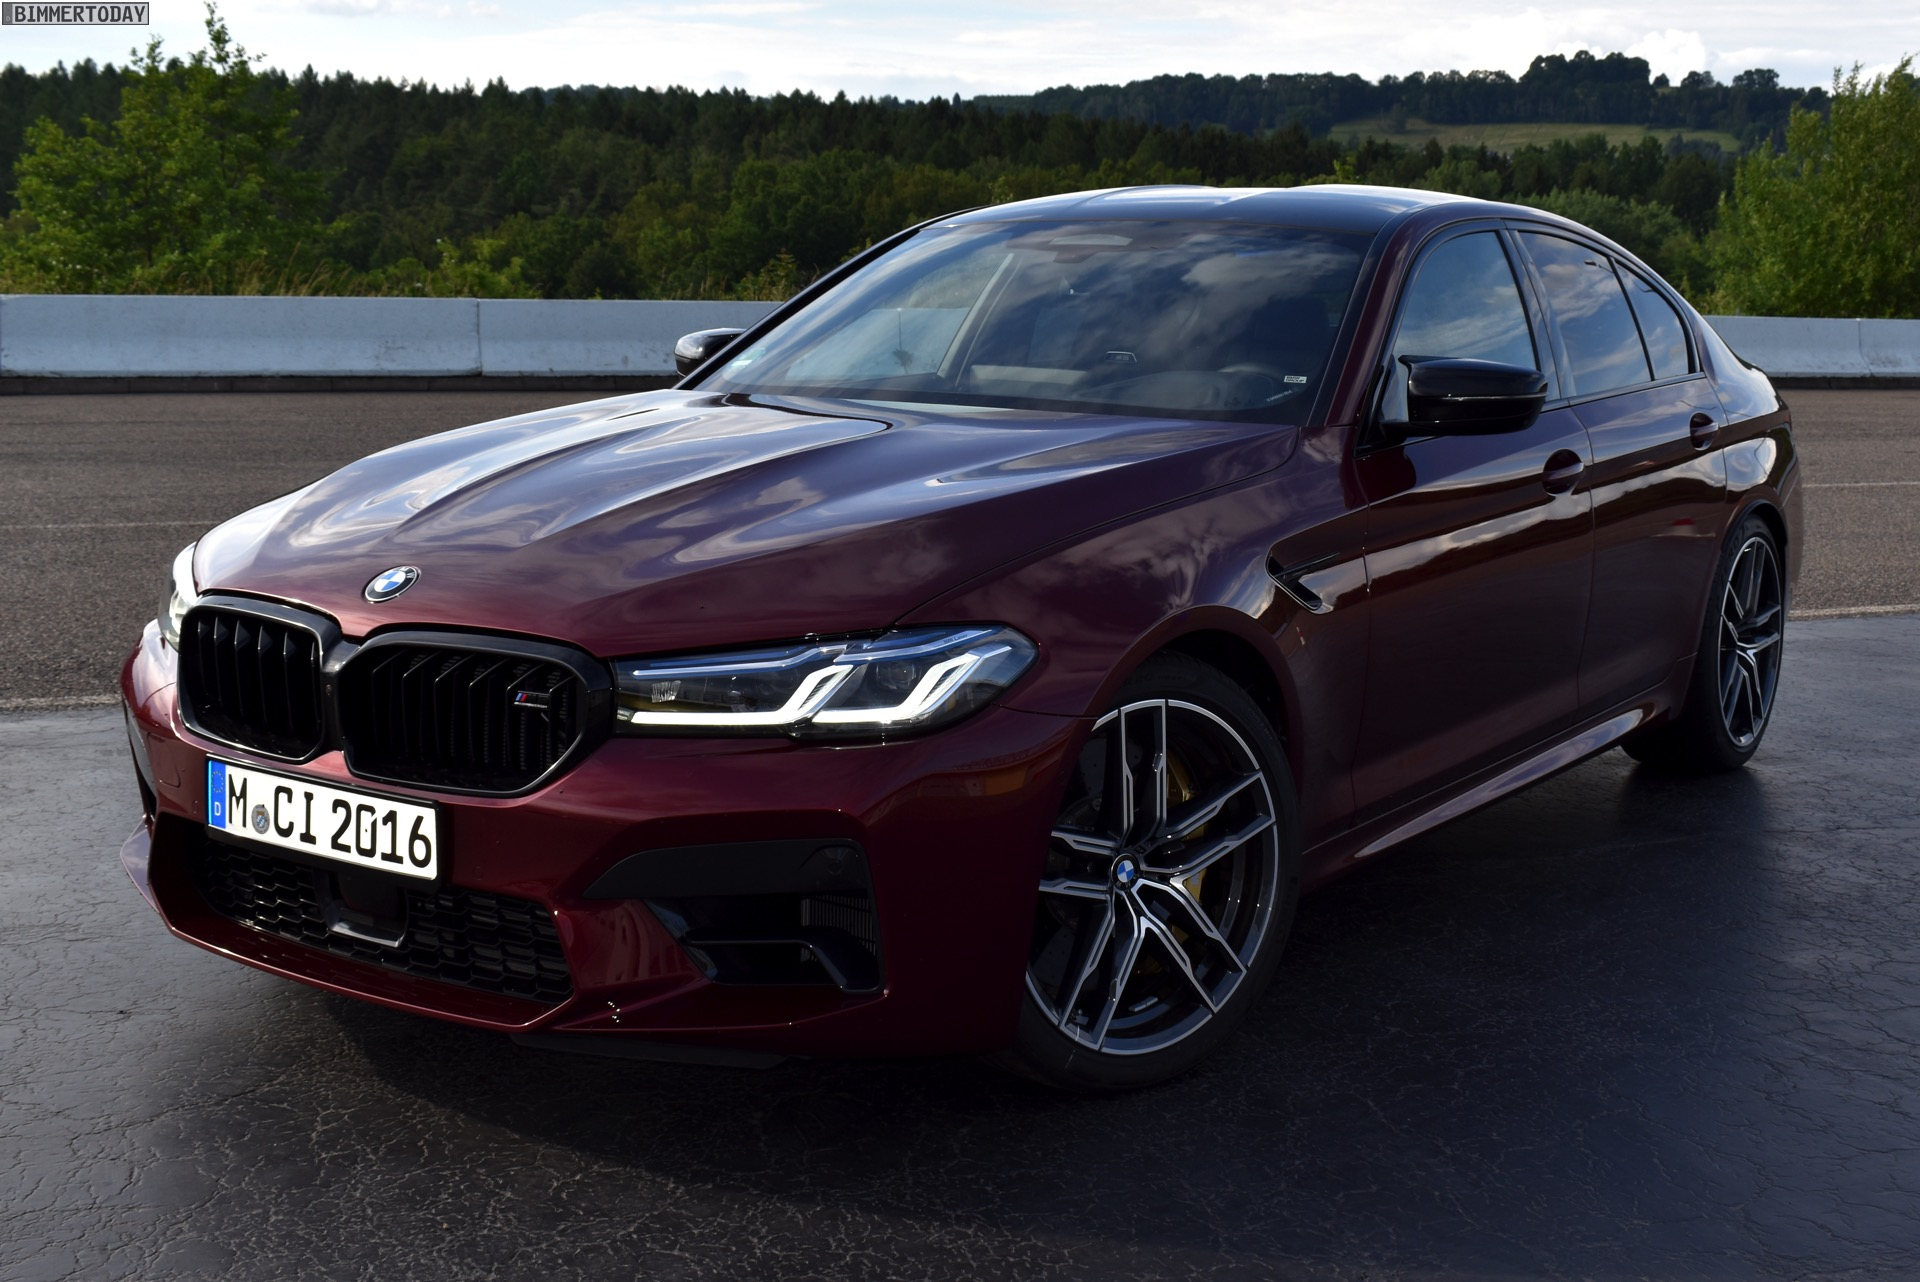 Bmw M5 Excessivelocity Com The Ultimate Car And Motor Sports Blog